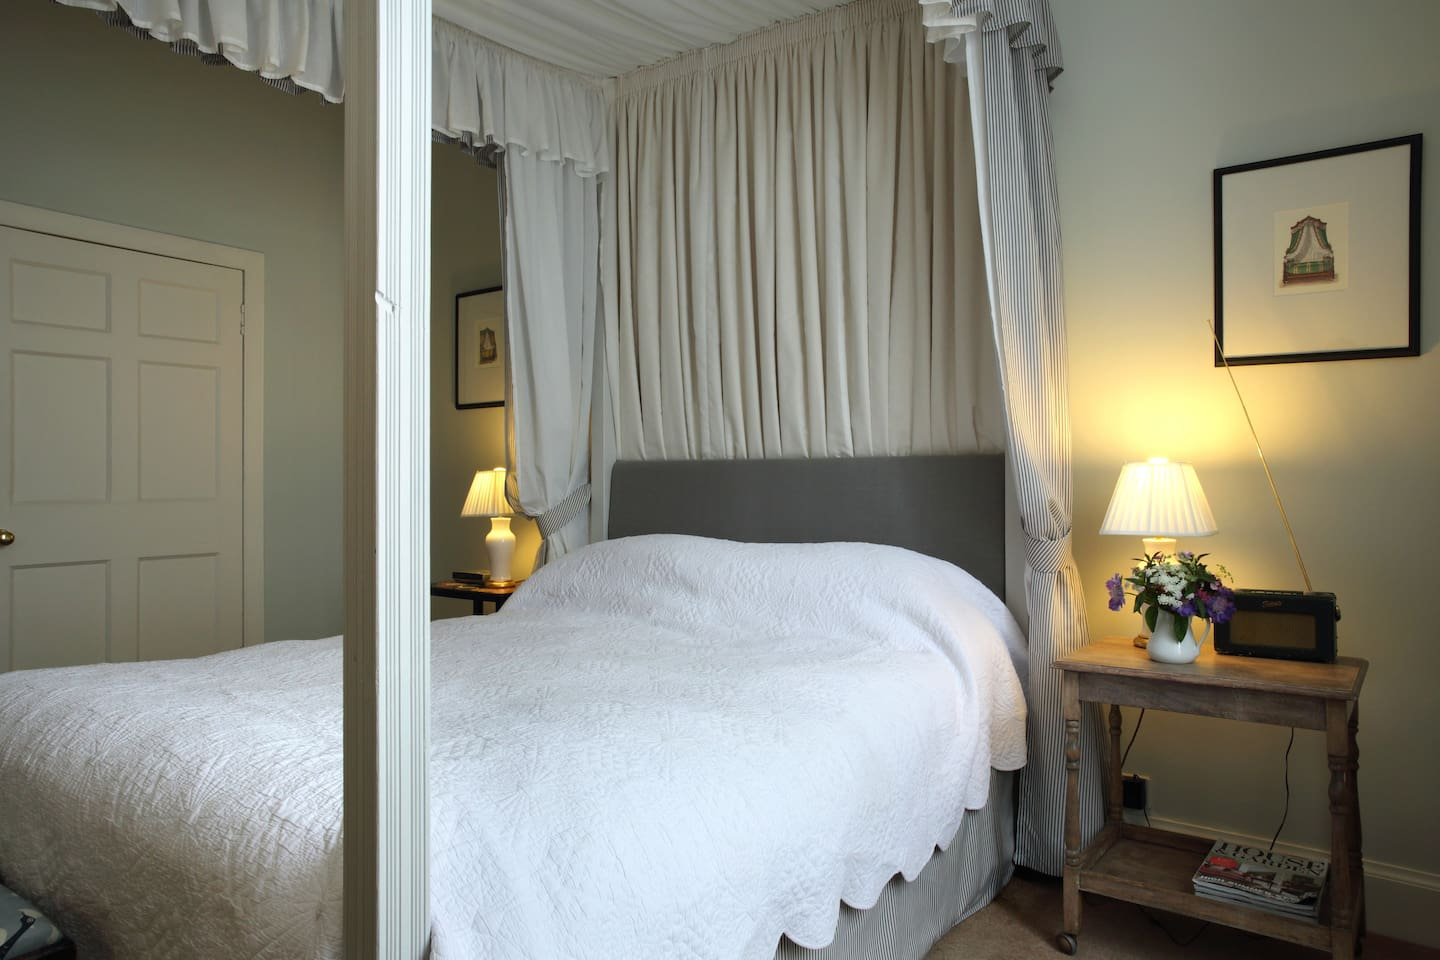 Master bedroom with an airy four poster bed and ensuite bathroom